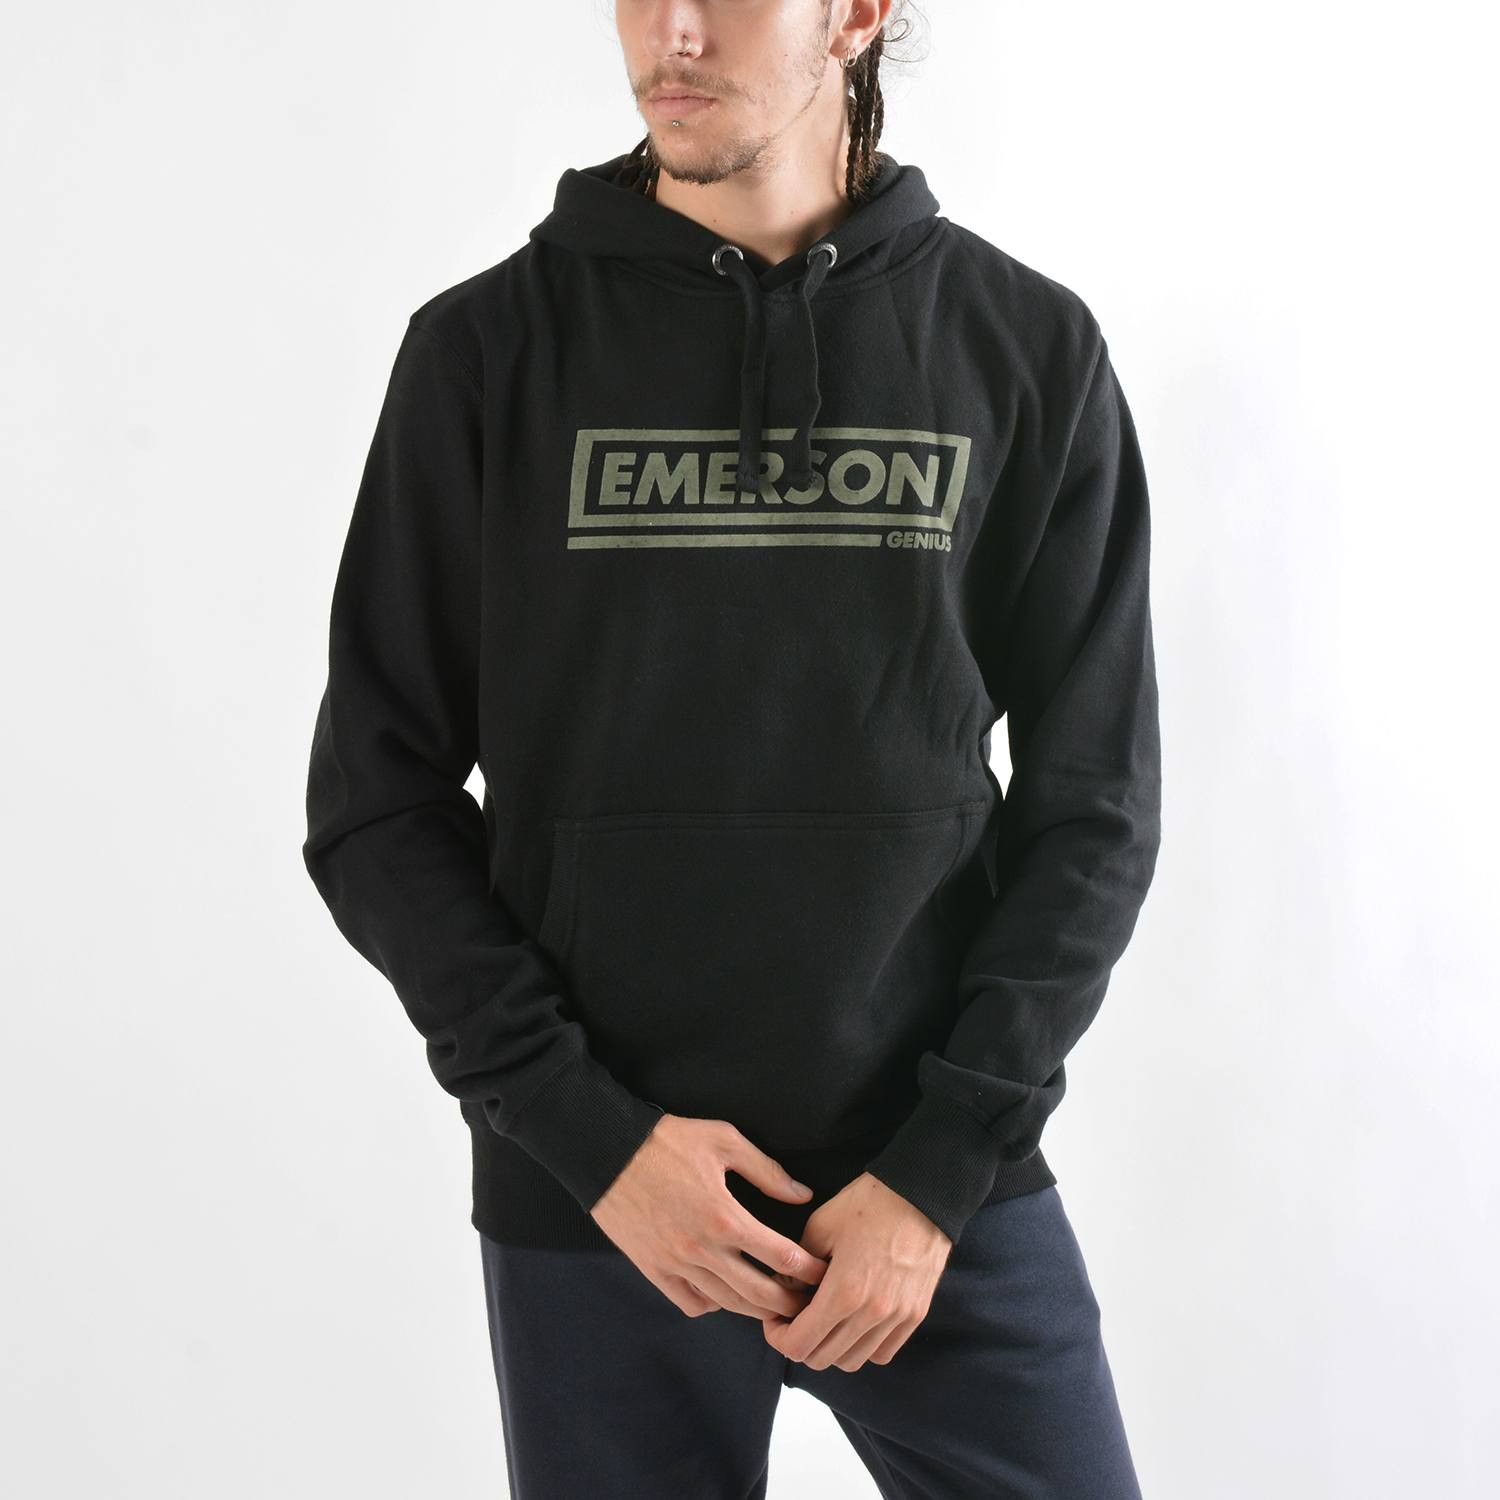 Emerson Men's Hooded Sweat (9000016449_1469)